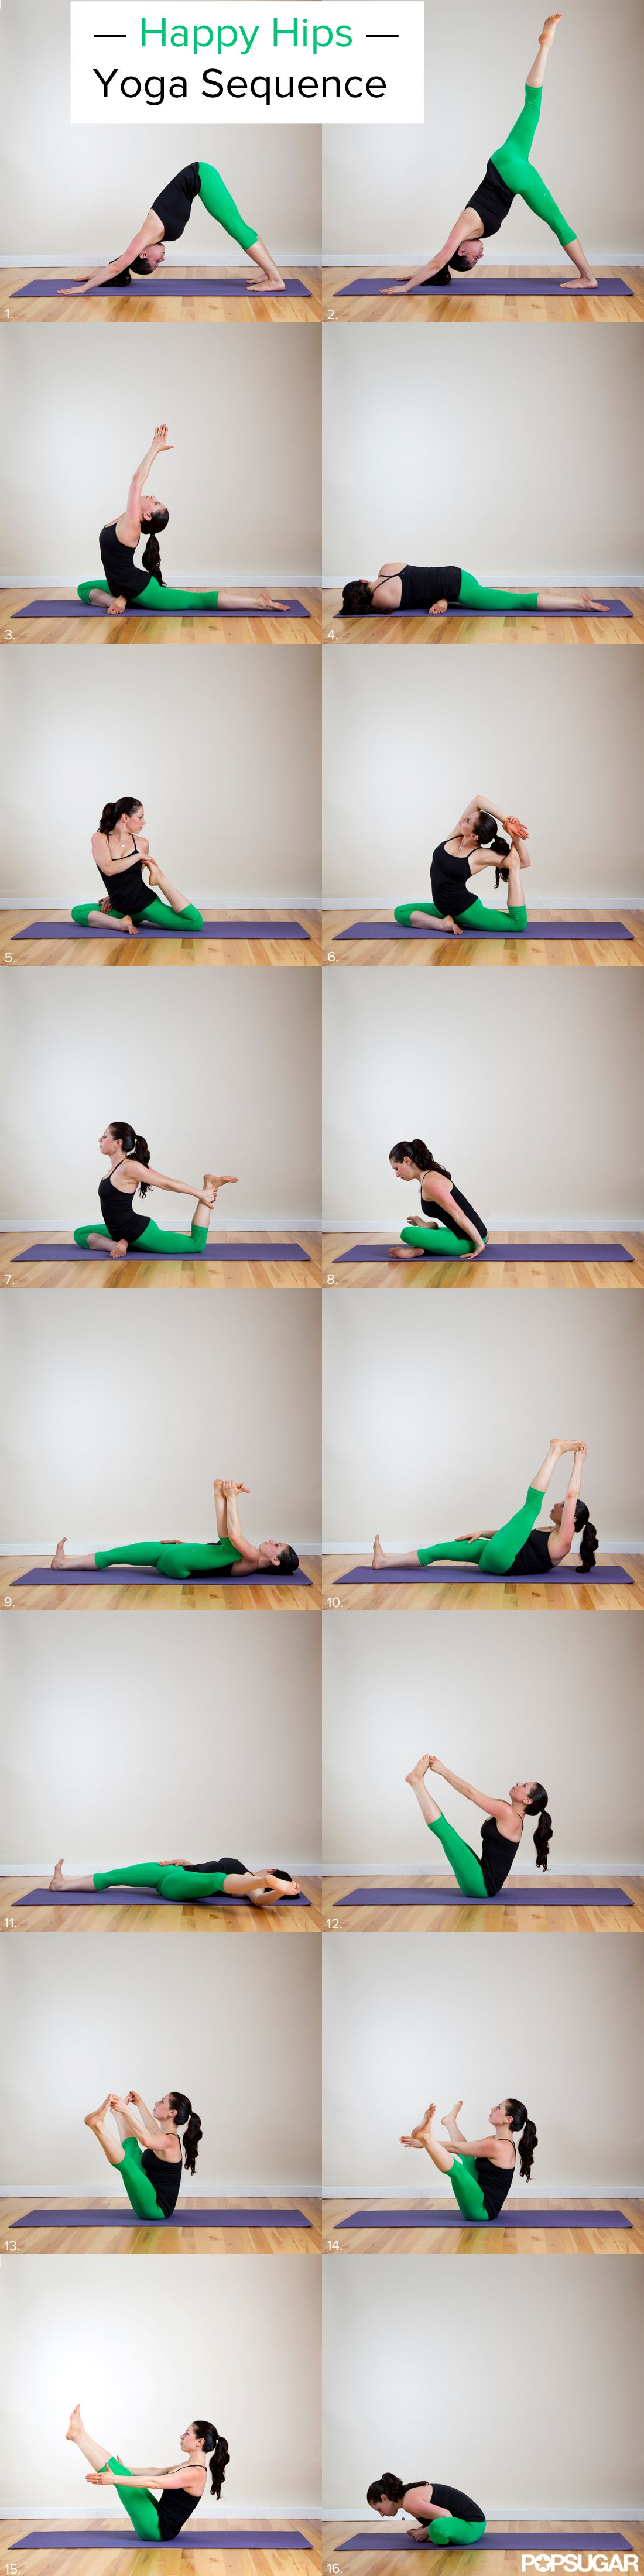 You Ll Want To Unroll Your Mat For This Happy Hips Yoga Sequence Yoga Sequences Yoga Poses Yoga Stretches